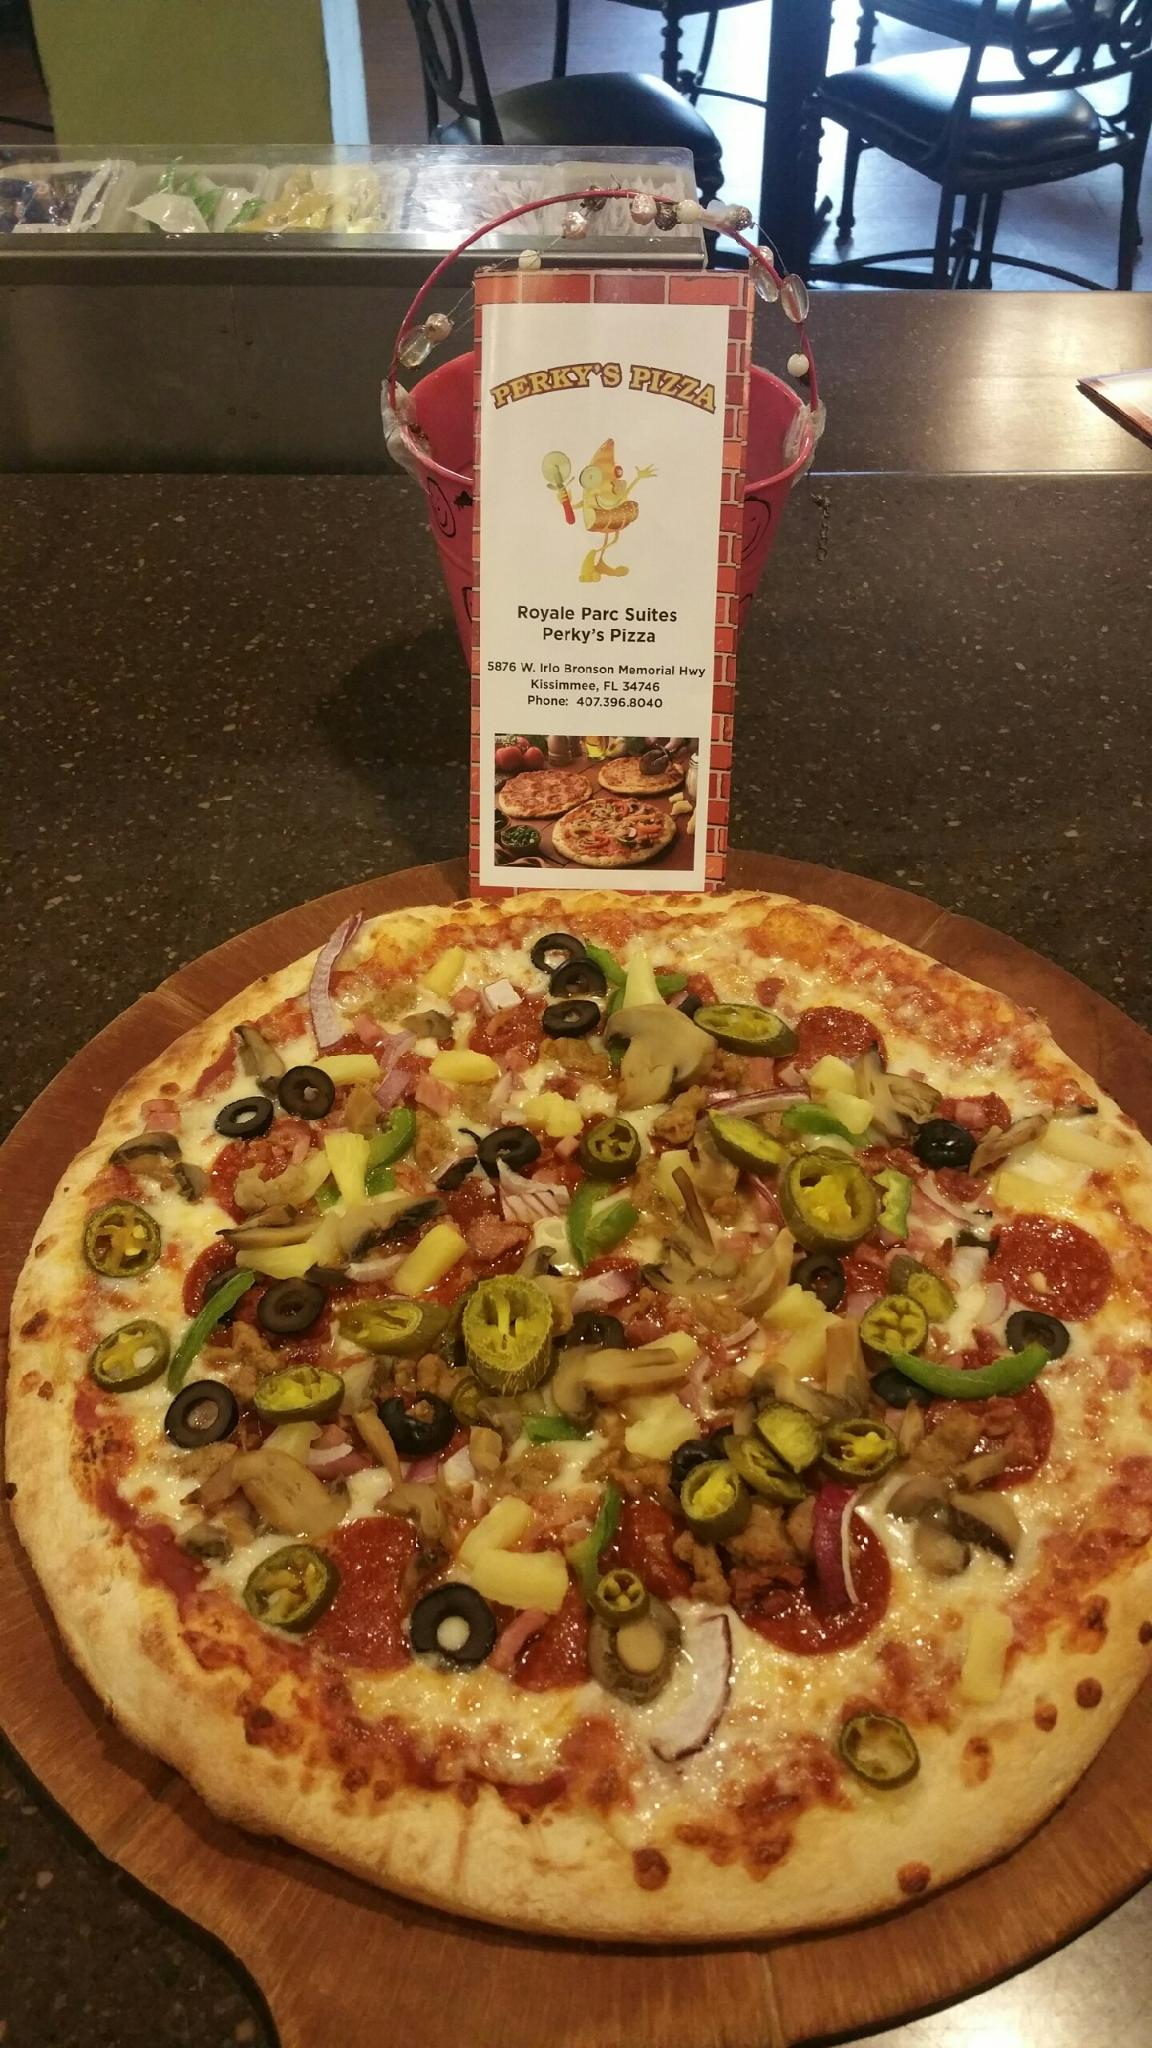 Perky's Pizza - casual family dining - Royale Parc Suites